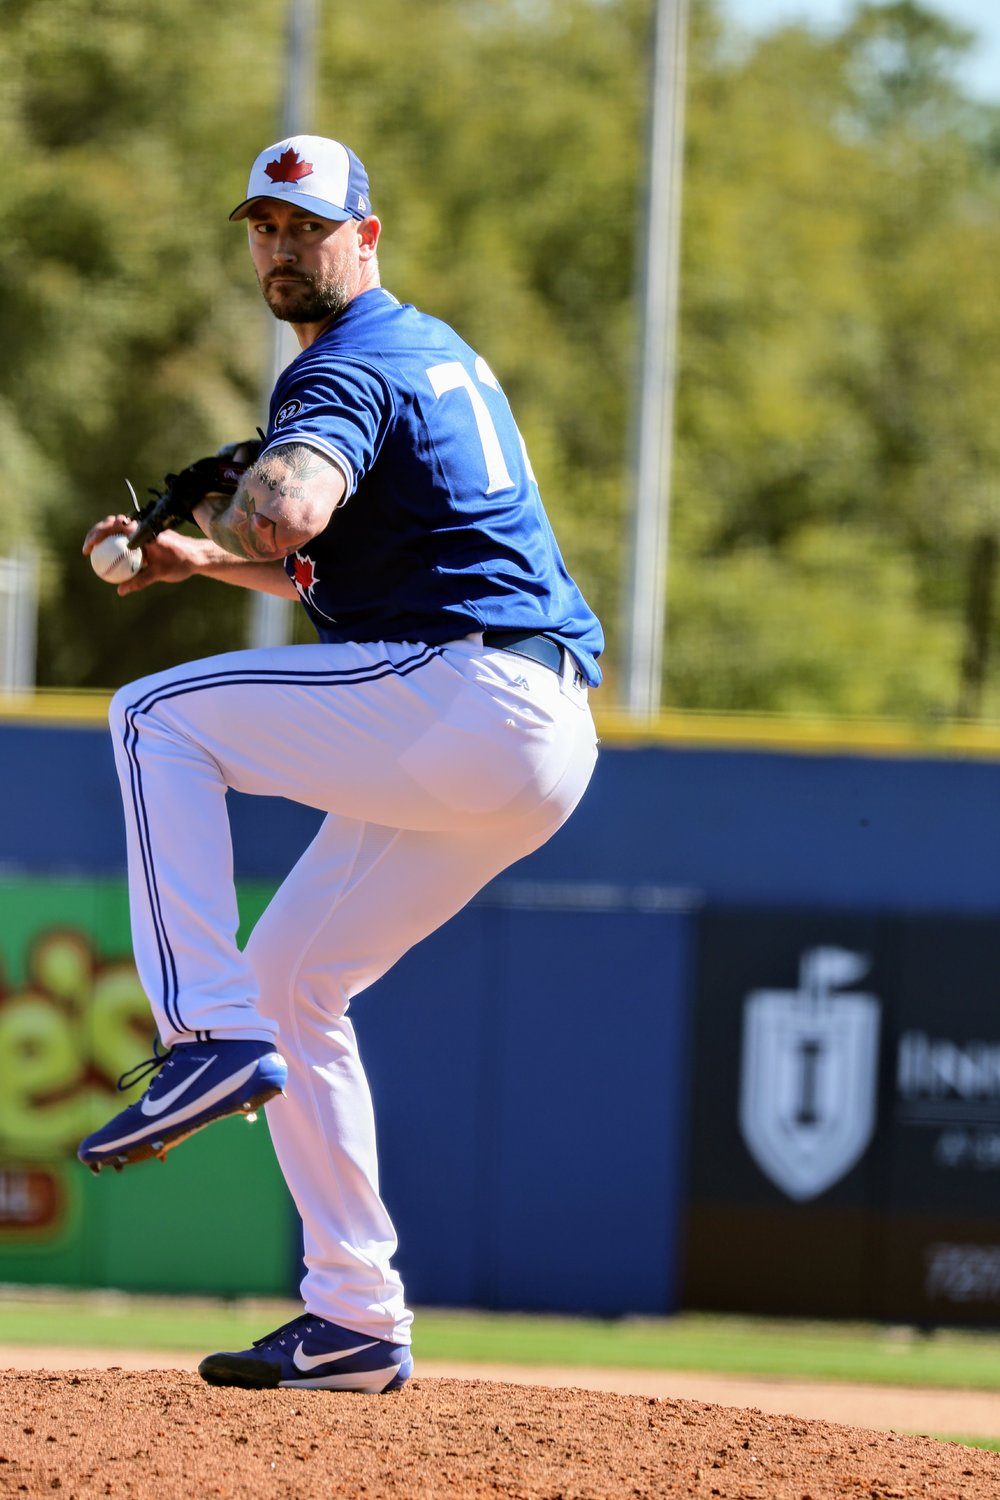 Port Dover, Ont., native John Axford settled things down for the Blue Jays in the seventh when he pitched a scoreless inning.